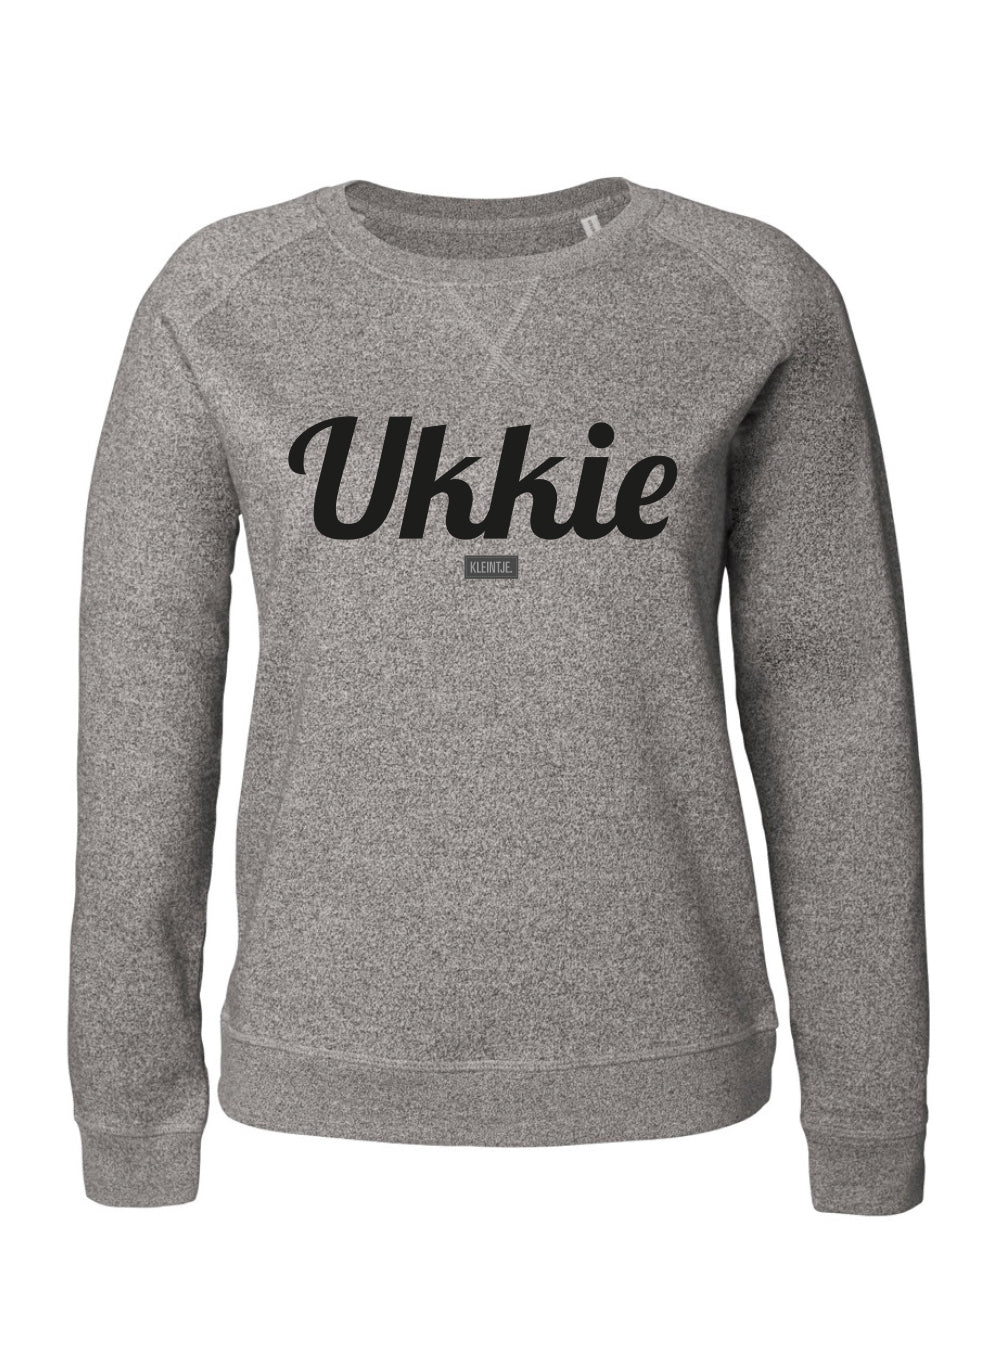 'Ukkie' Dames Sweater